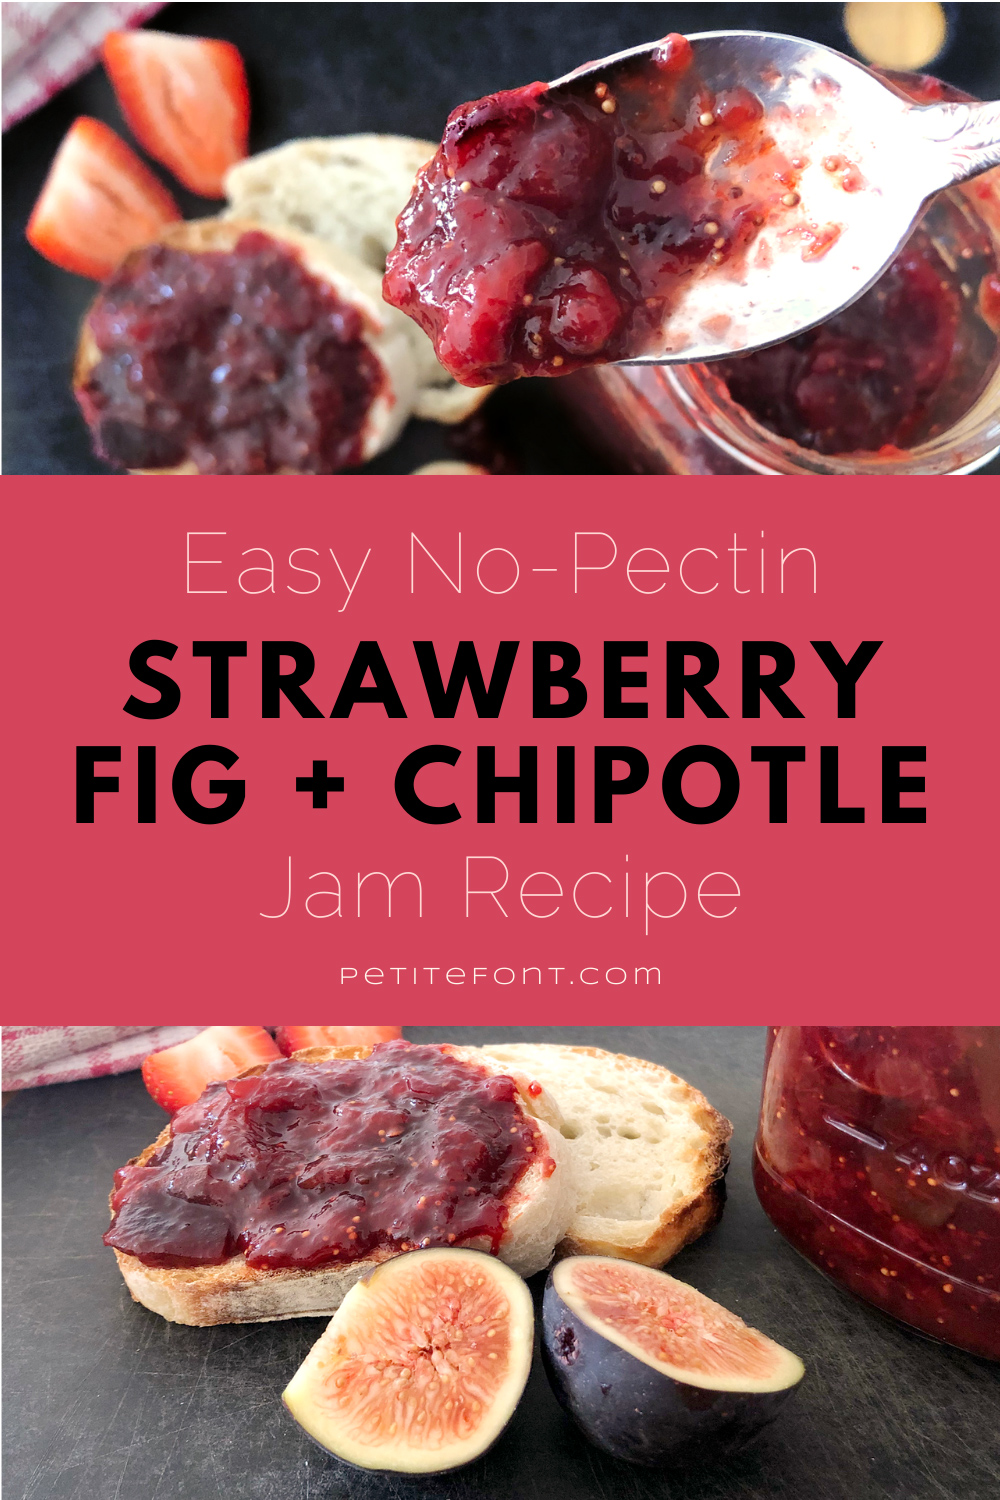 "Top photo shows a spoonful of jam over toasted bread and jam plus some strawberries. Bottom photo zooms in on toast and figs. Text in middle reads ""easy no-pectin strawberry fig and chipotle jam recipe"""